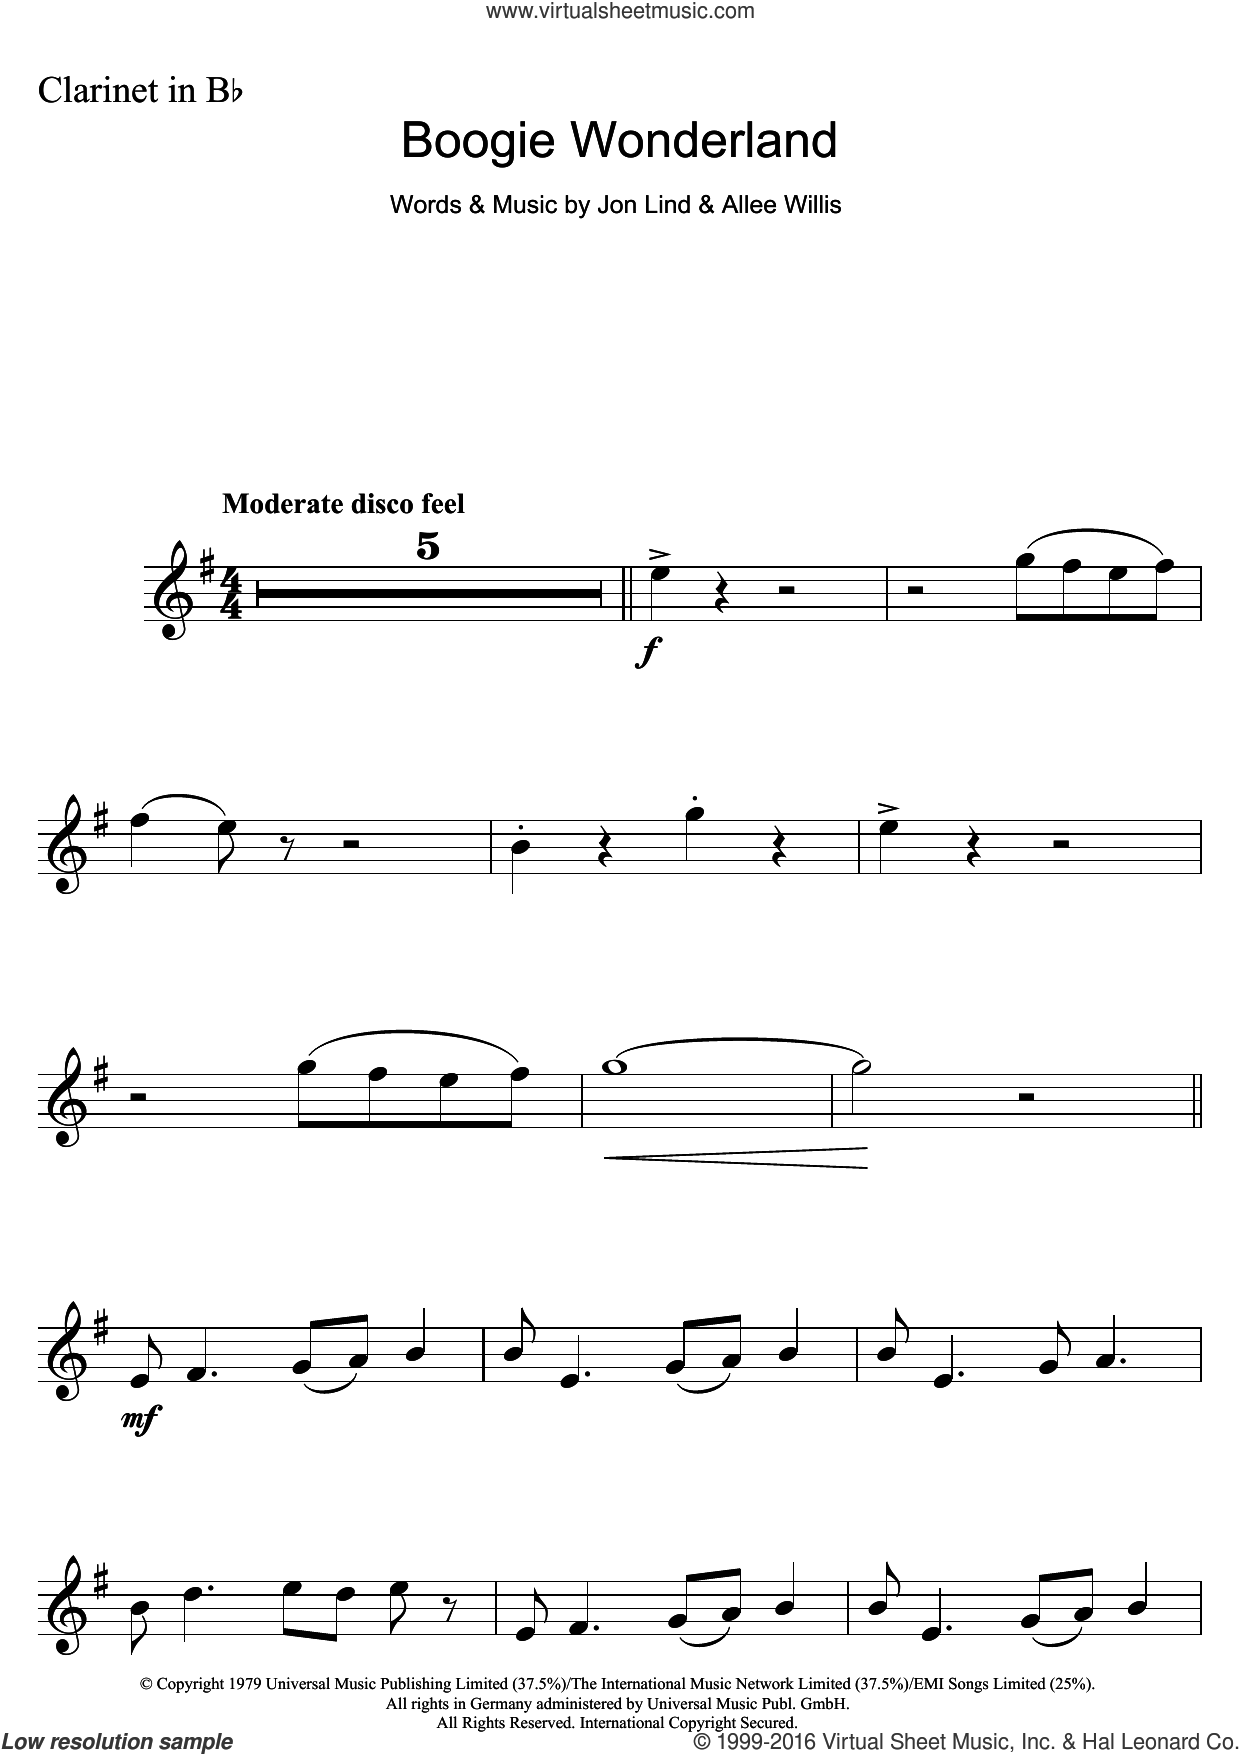 Boogie Wonderland sheet music for clarinet solo by Earth, Wind & Fire, Allee Willis and Jon Lind, intermediate skill level